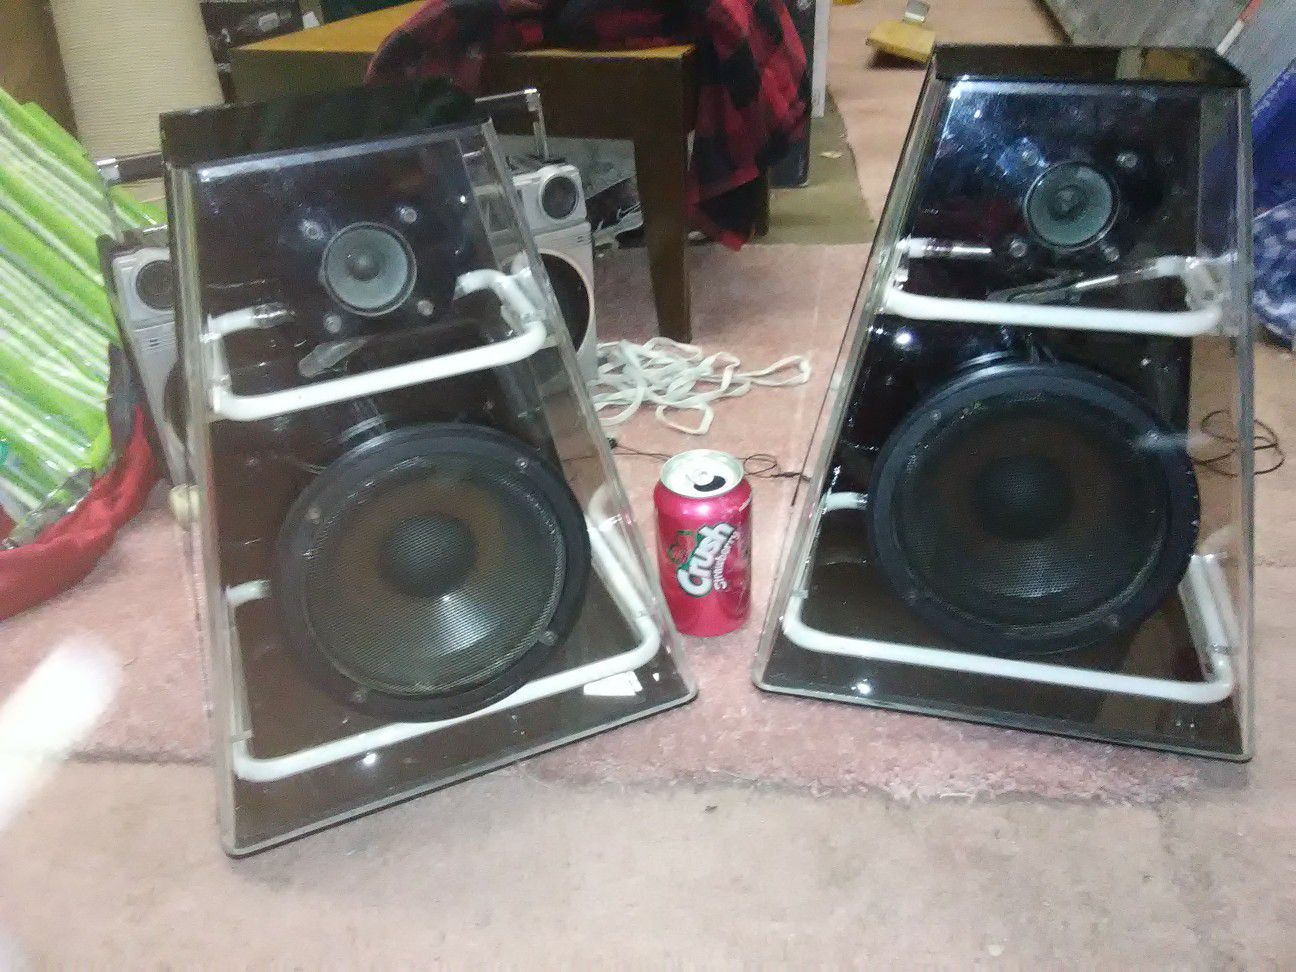 Stereo speakers with neon lights inside